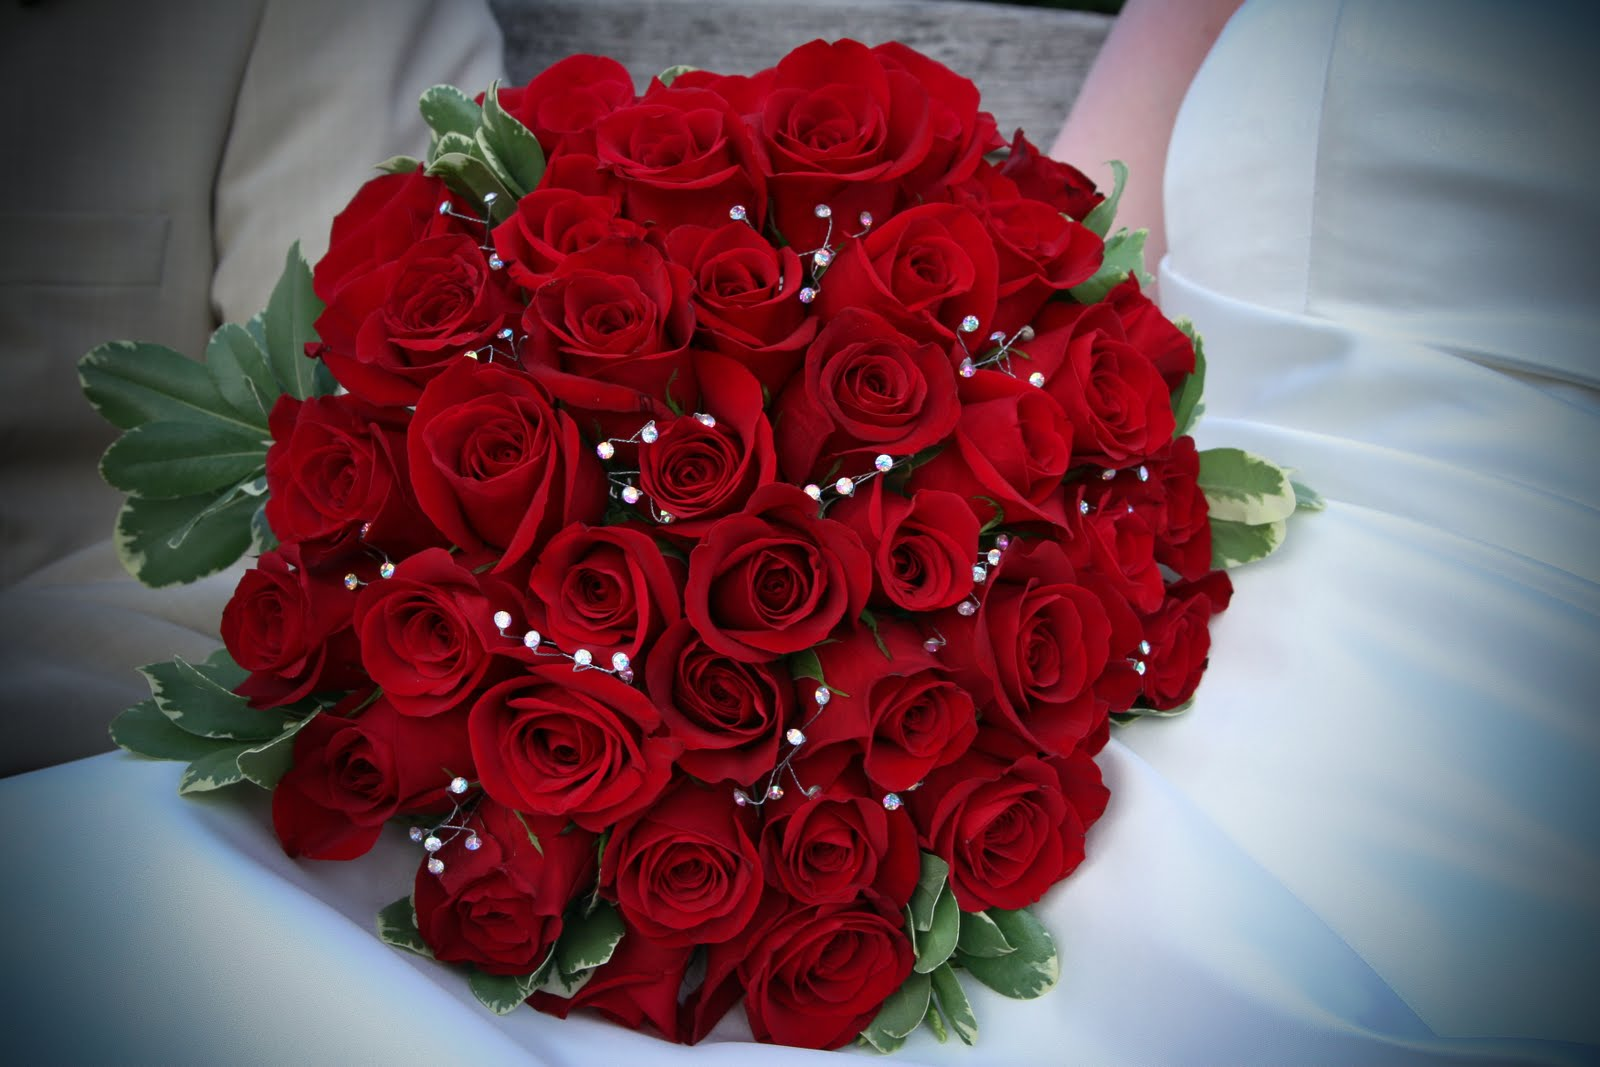 The Most Beautiful Red Flower In The World